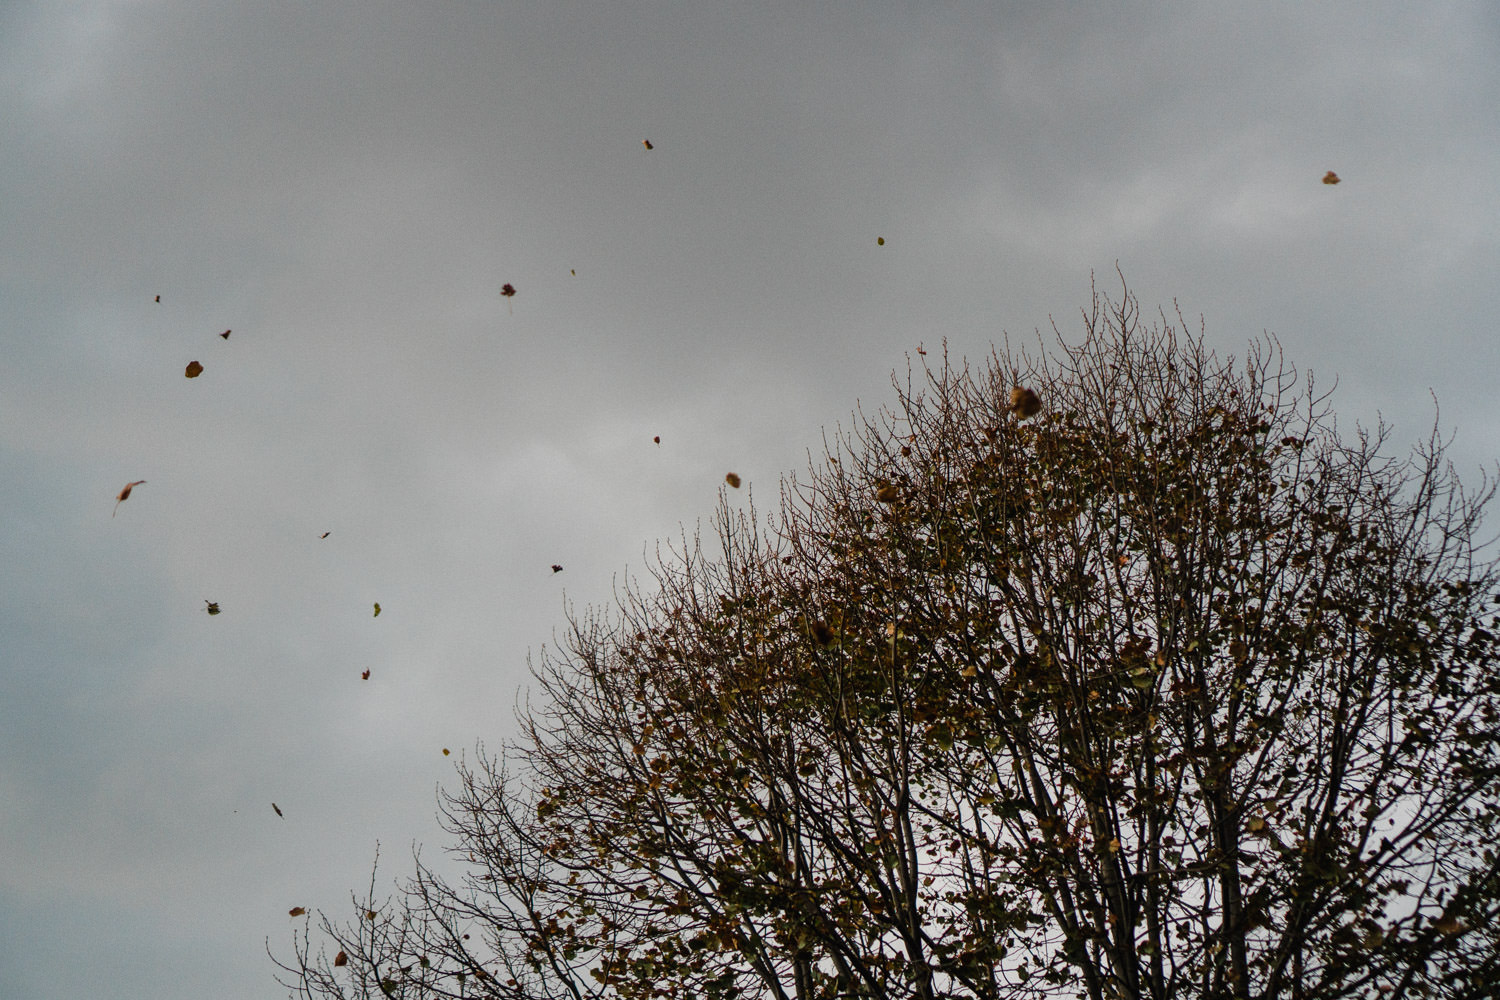 Leaves flying off a tree.